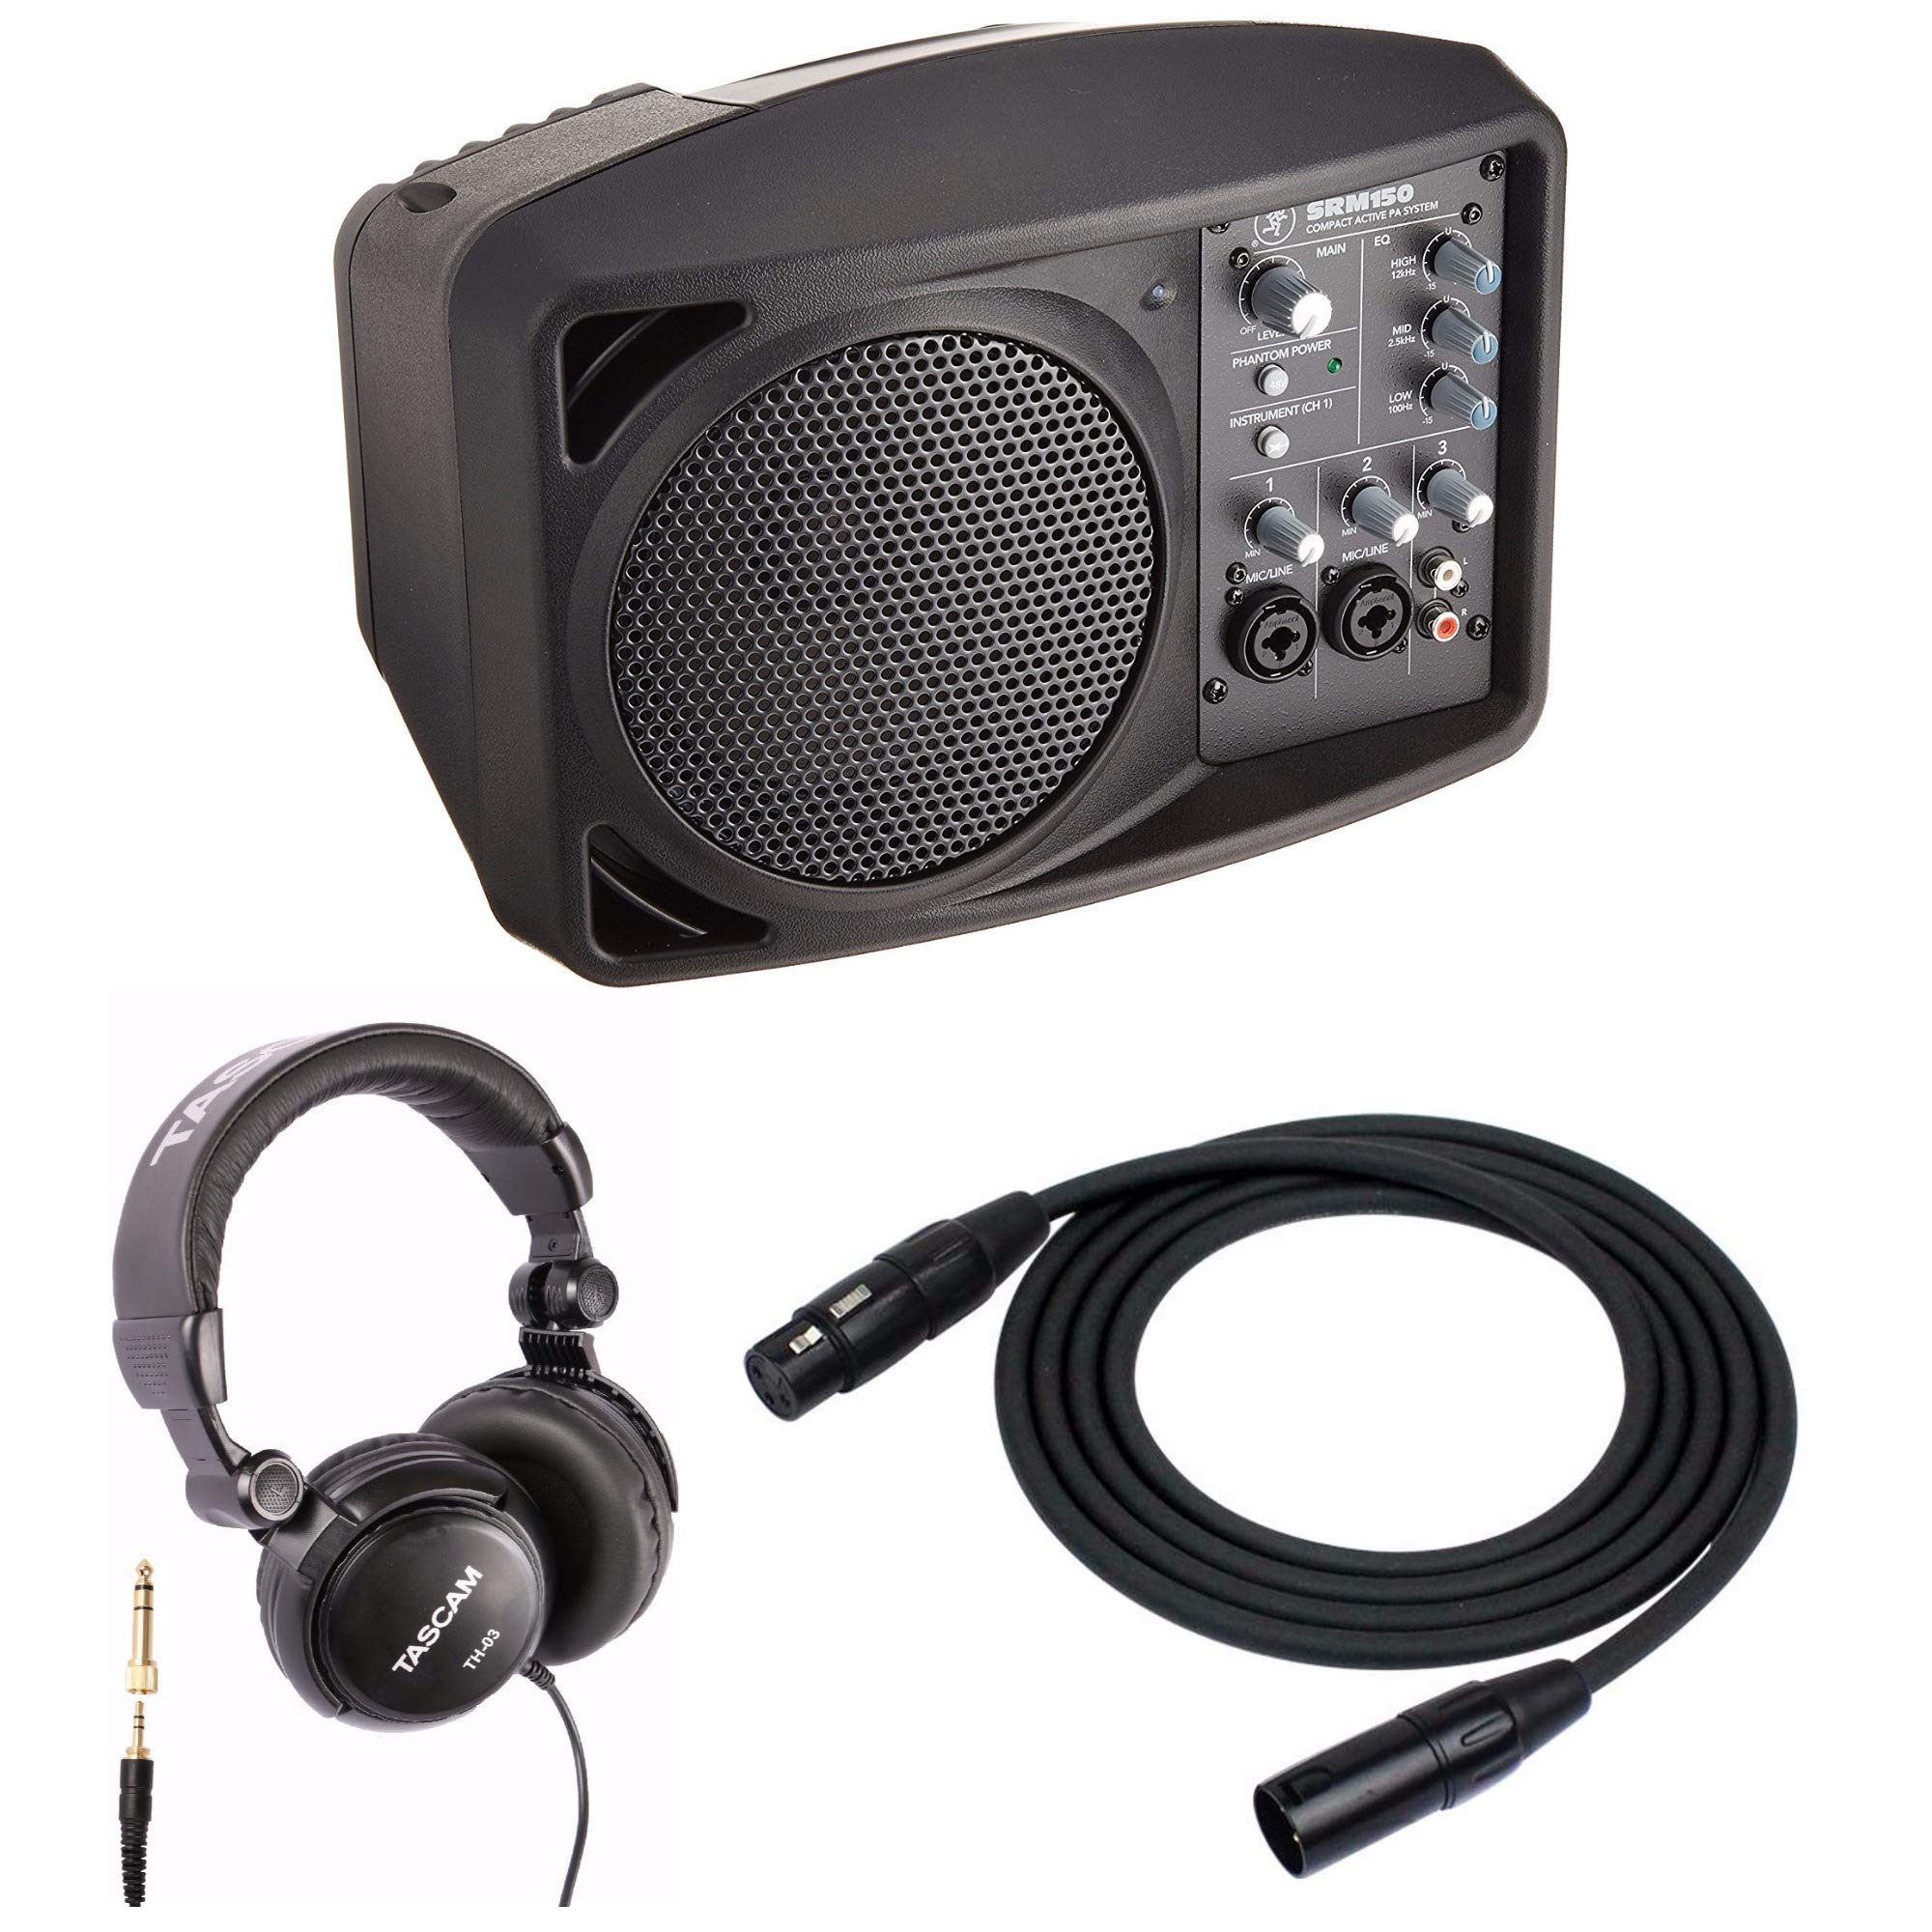 Mackie SRM150 5.25'' Compact Powered Active PA System with XLR Microphone Cables and Full-Sized Headphones